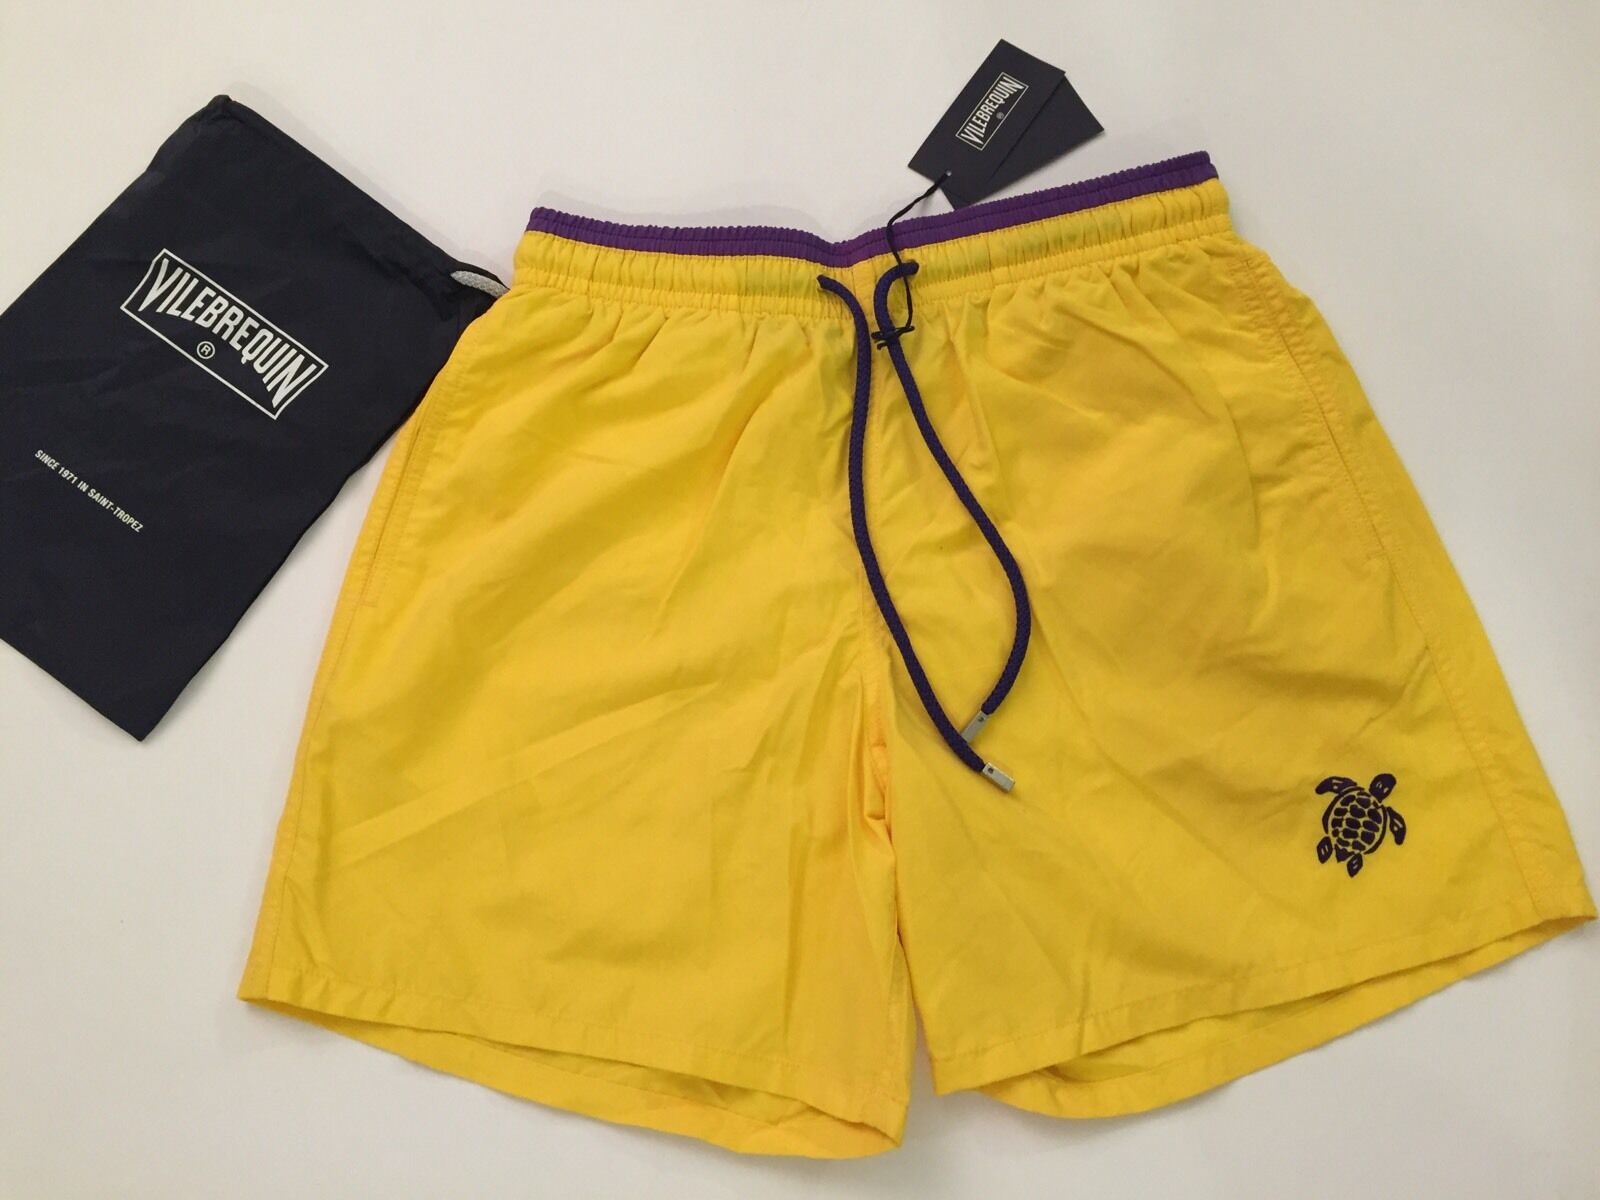 New w Tags & Bag Authentic Vilebrequin Moka Swim Trunks Yellow for Men XL